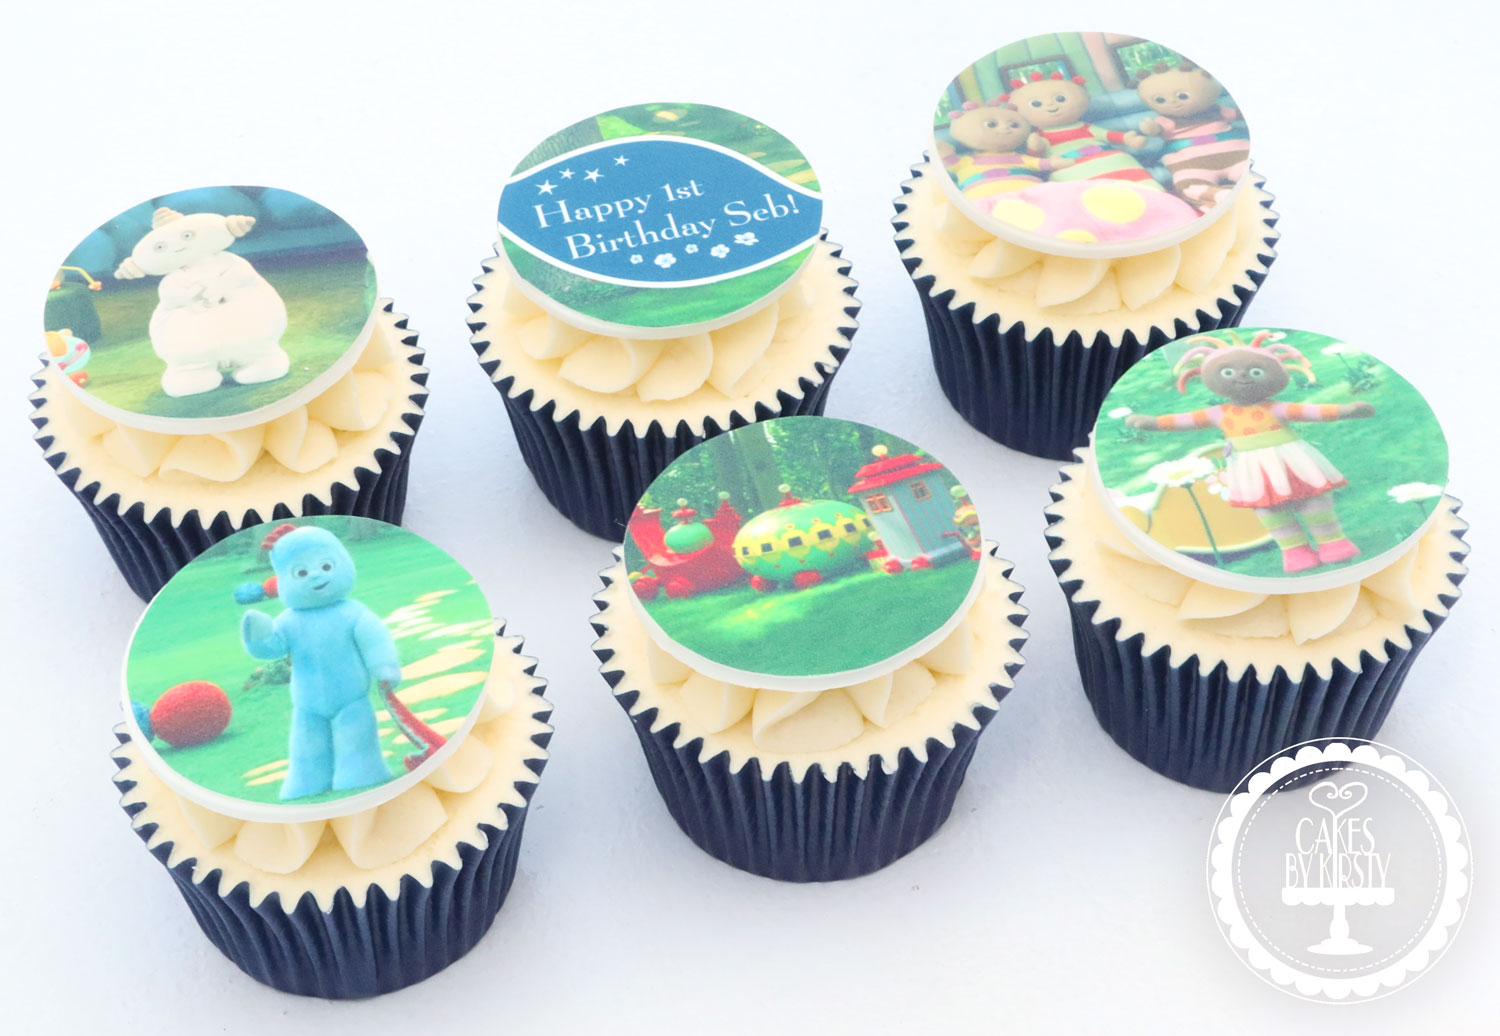 20201104 - In The Night Garden Cupcakes